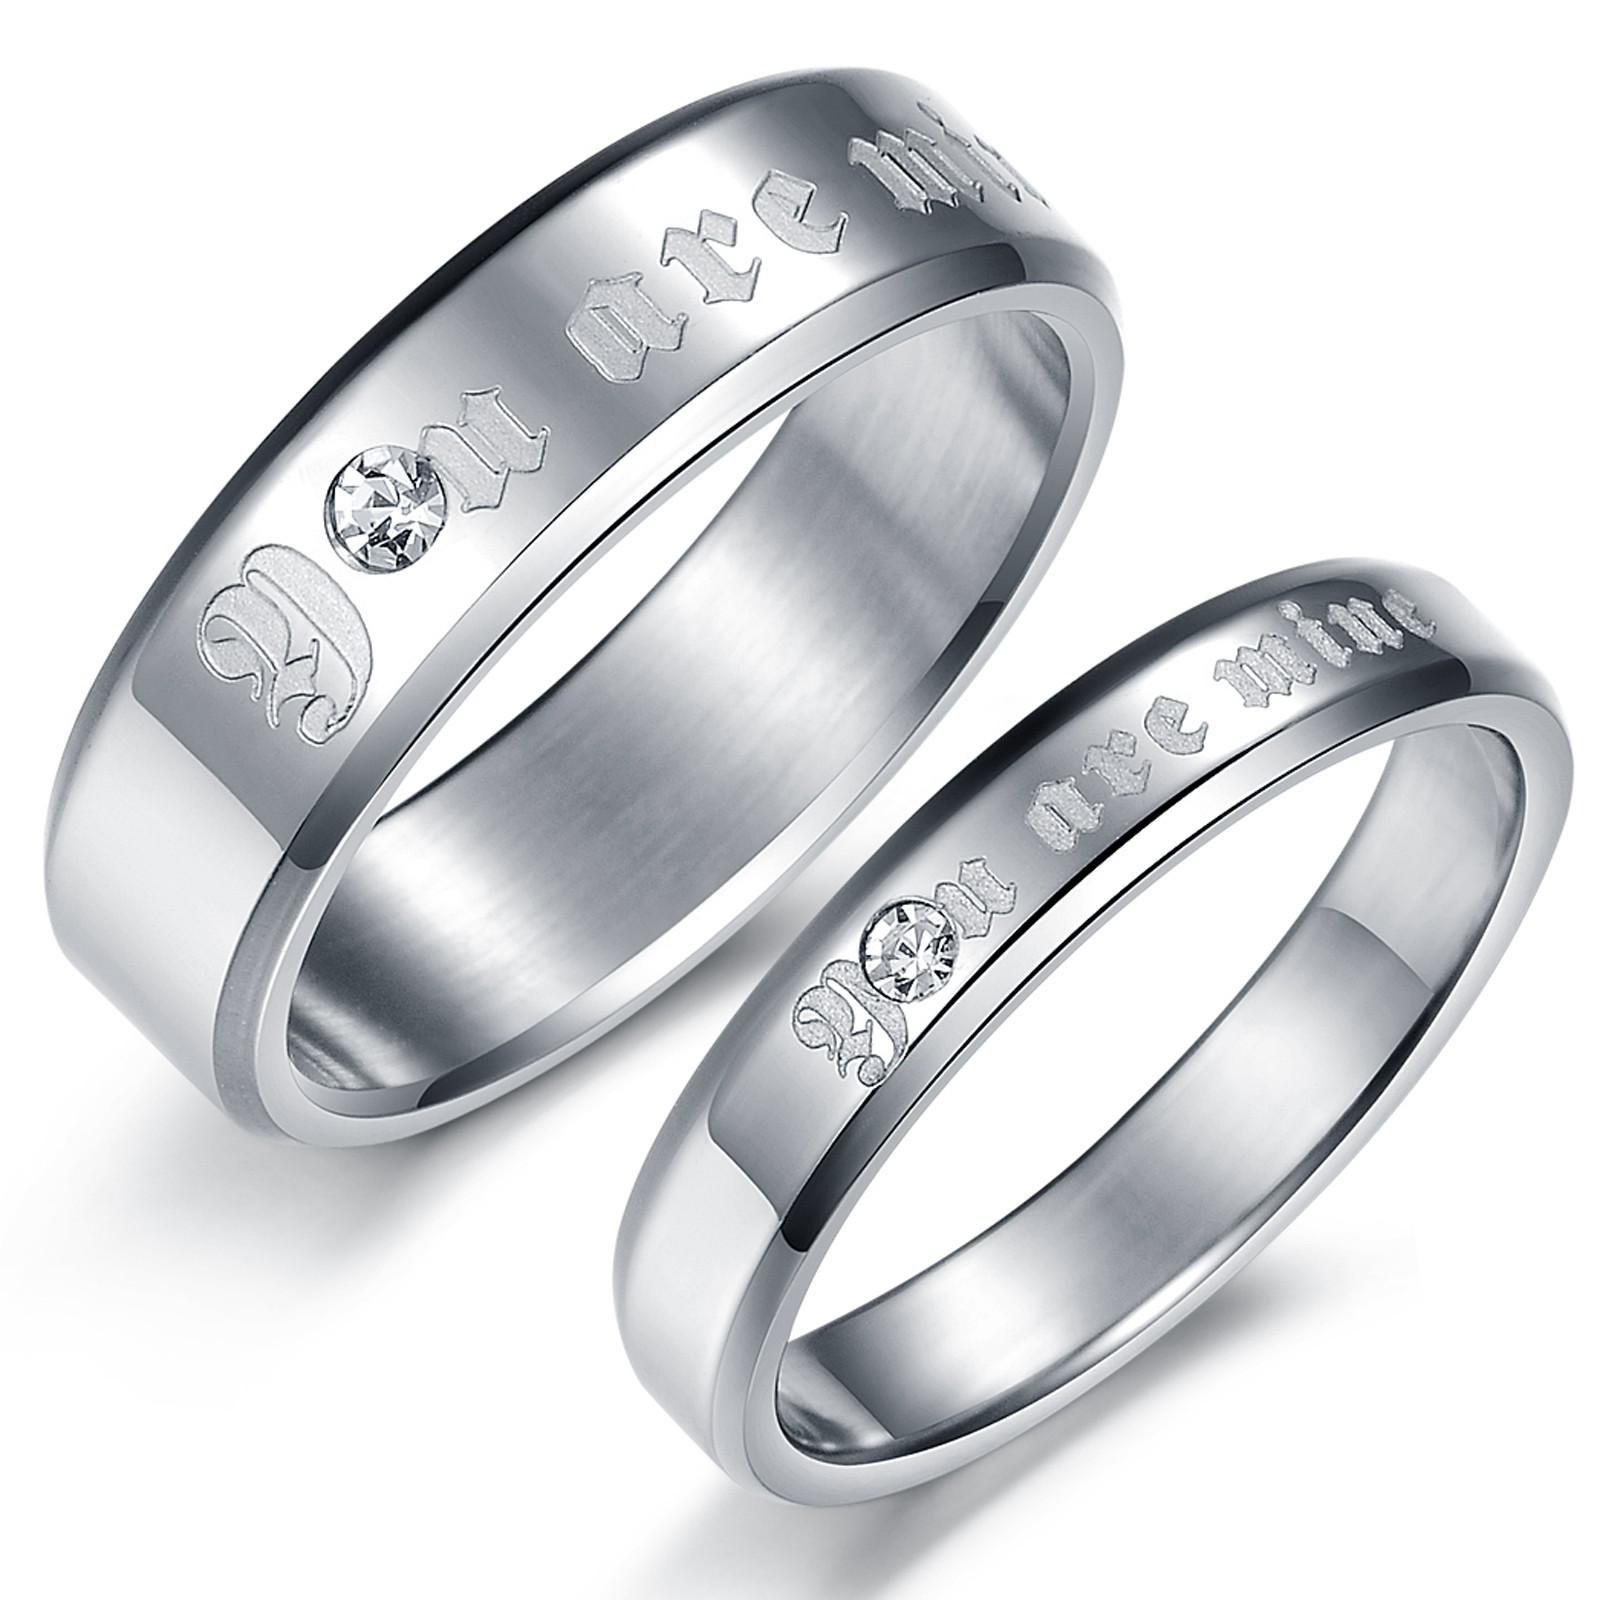 products for gf couple couplerings wedding matching puzzle rings bands heart gardeniajewel bf promise